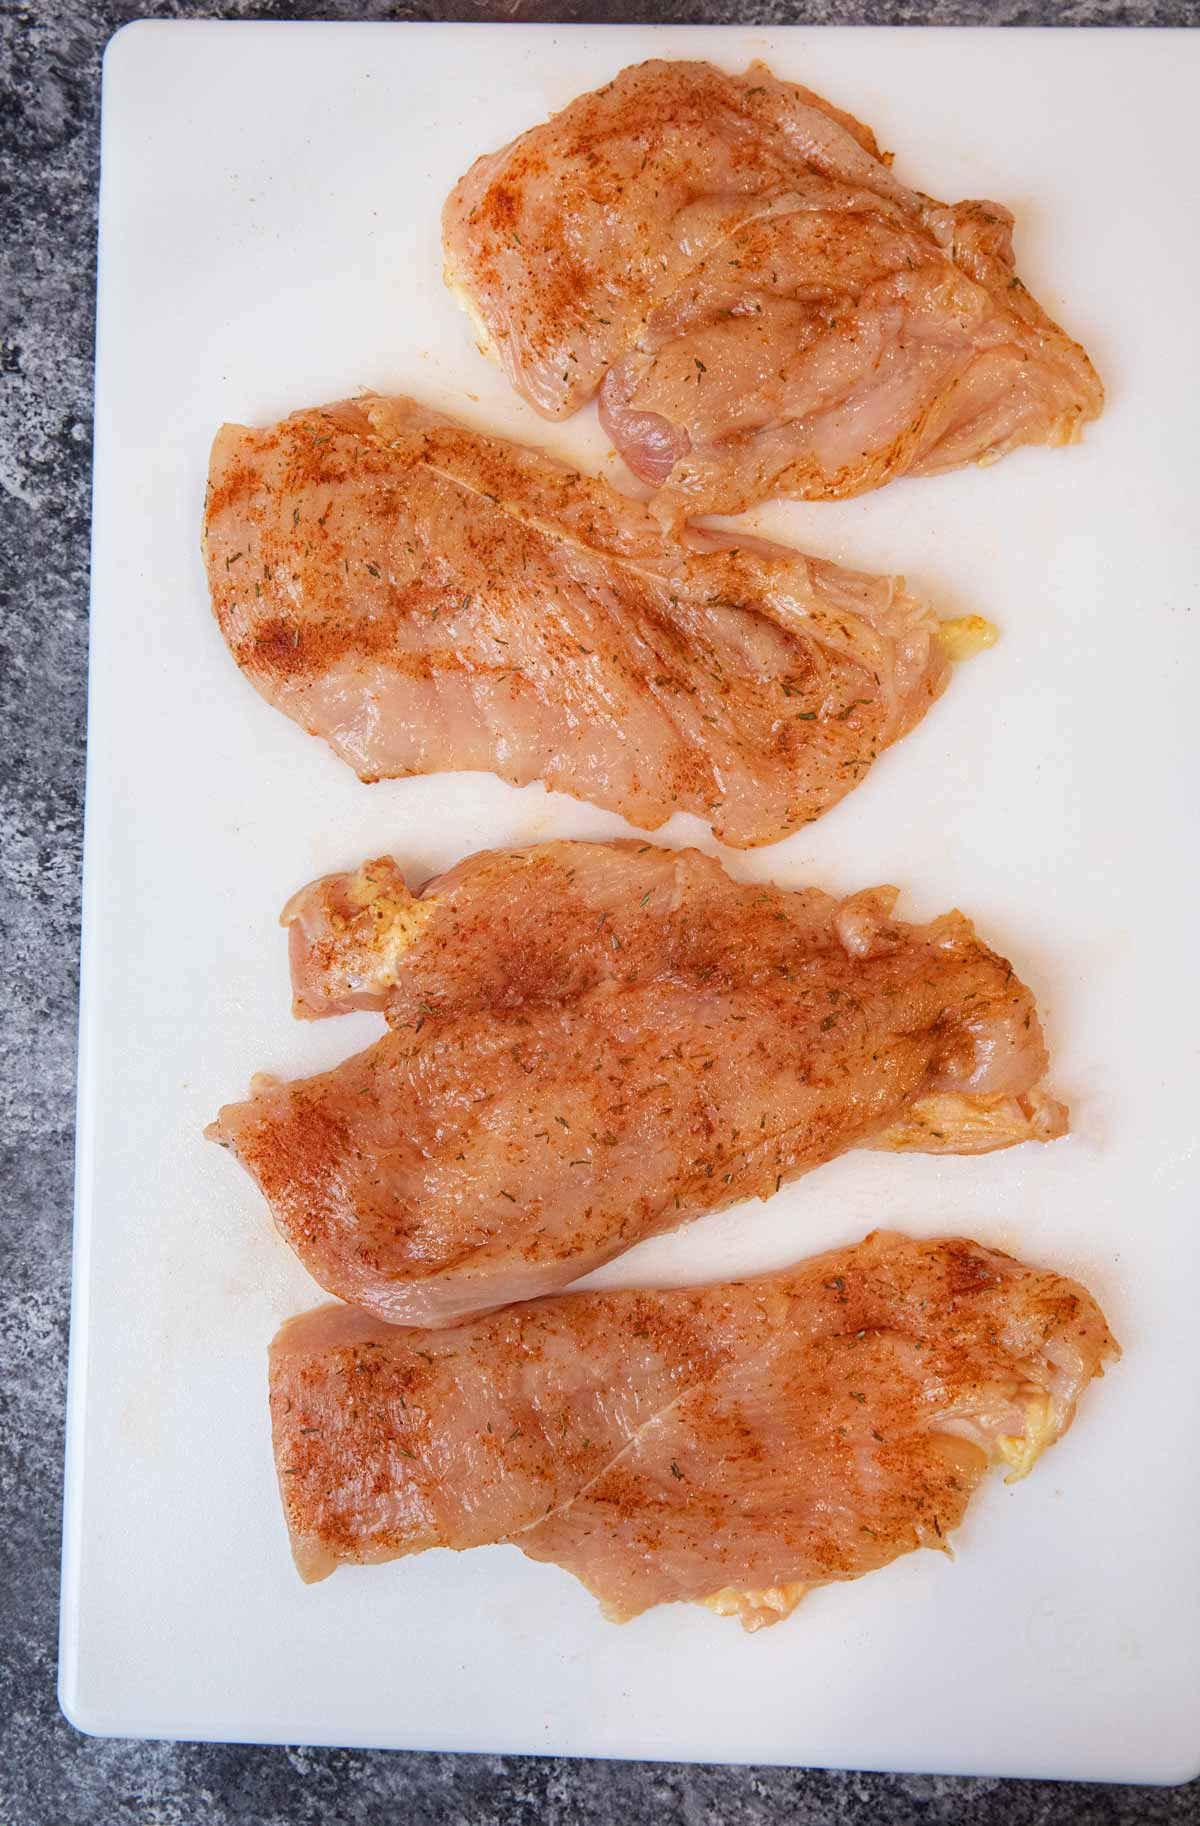 Blackened Chicken raw chicken breast coated with rub on cutting board